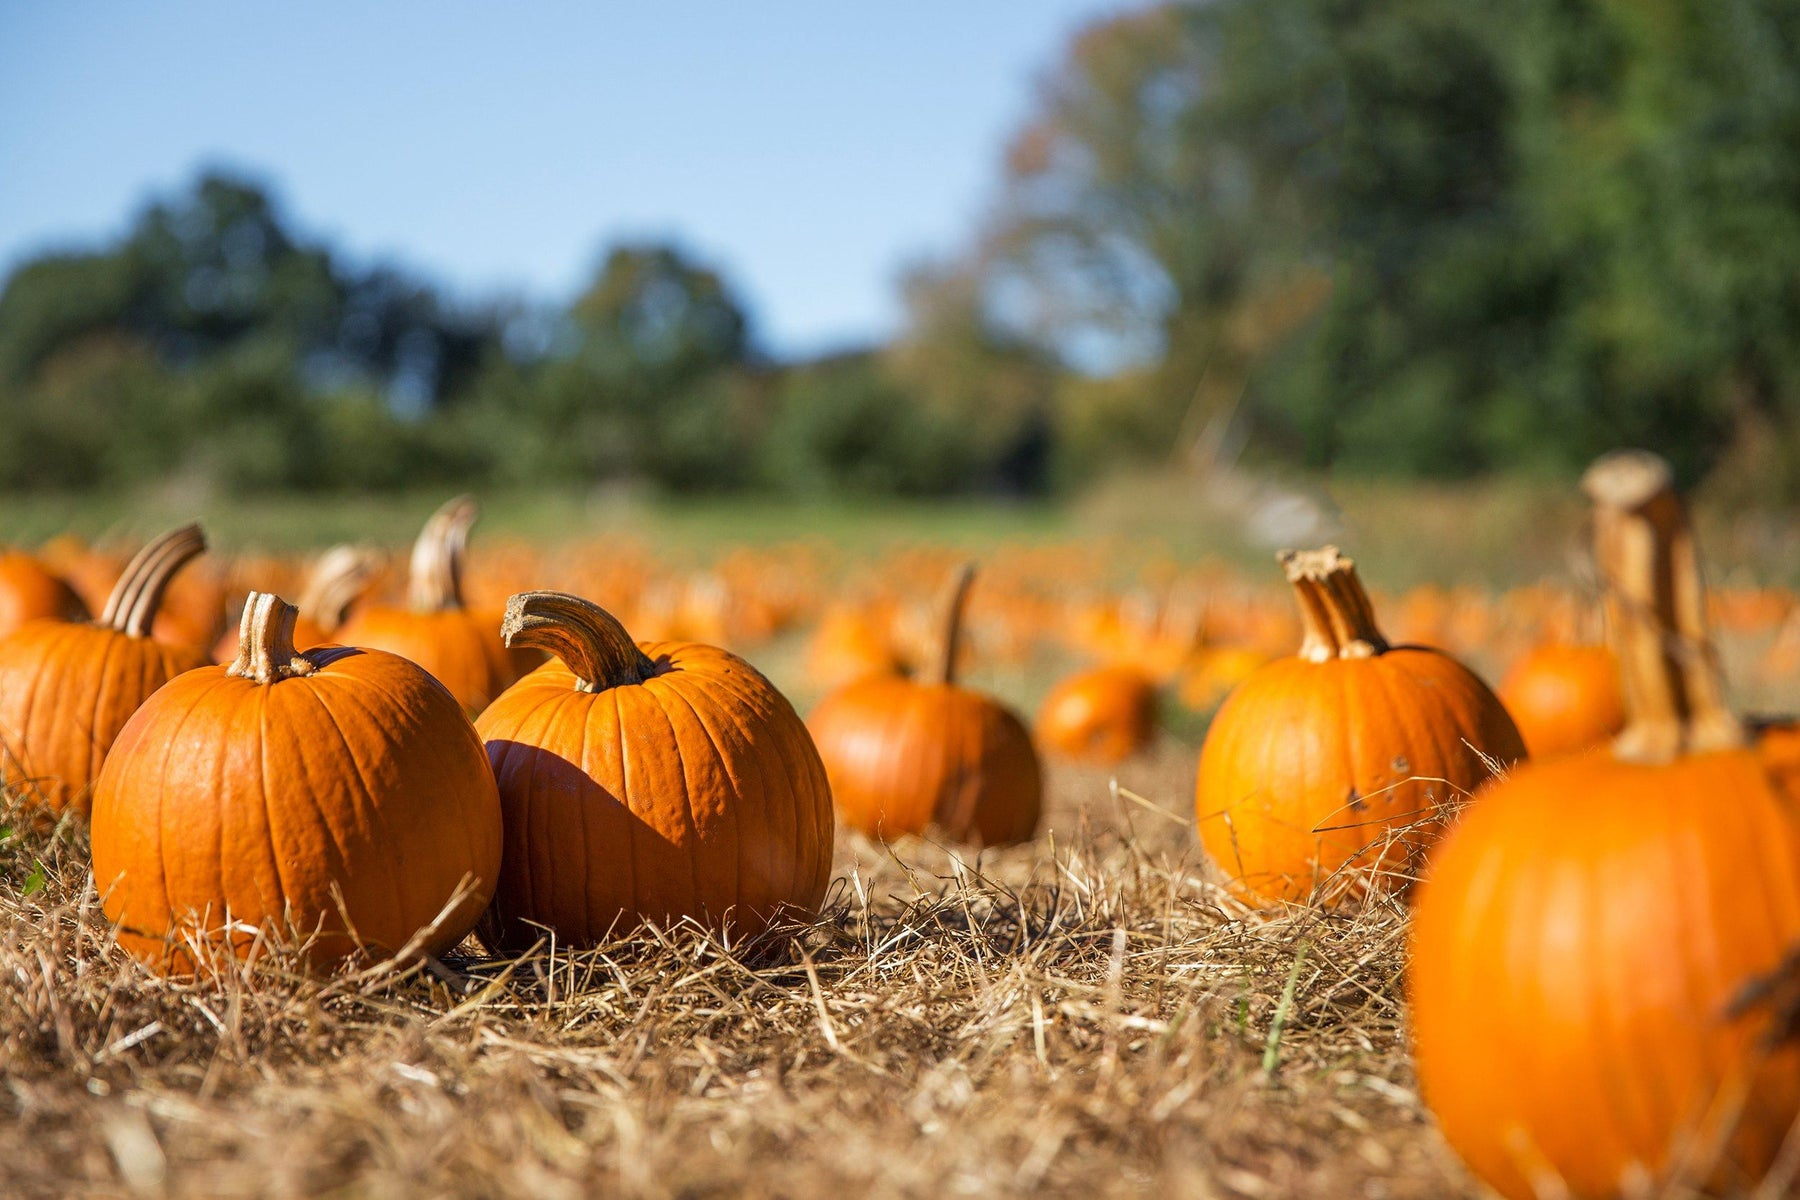 Not just for carving – how to enjoy pumpkins this Halloween